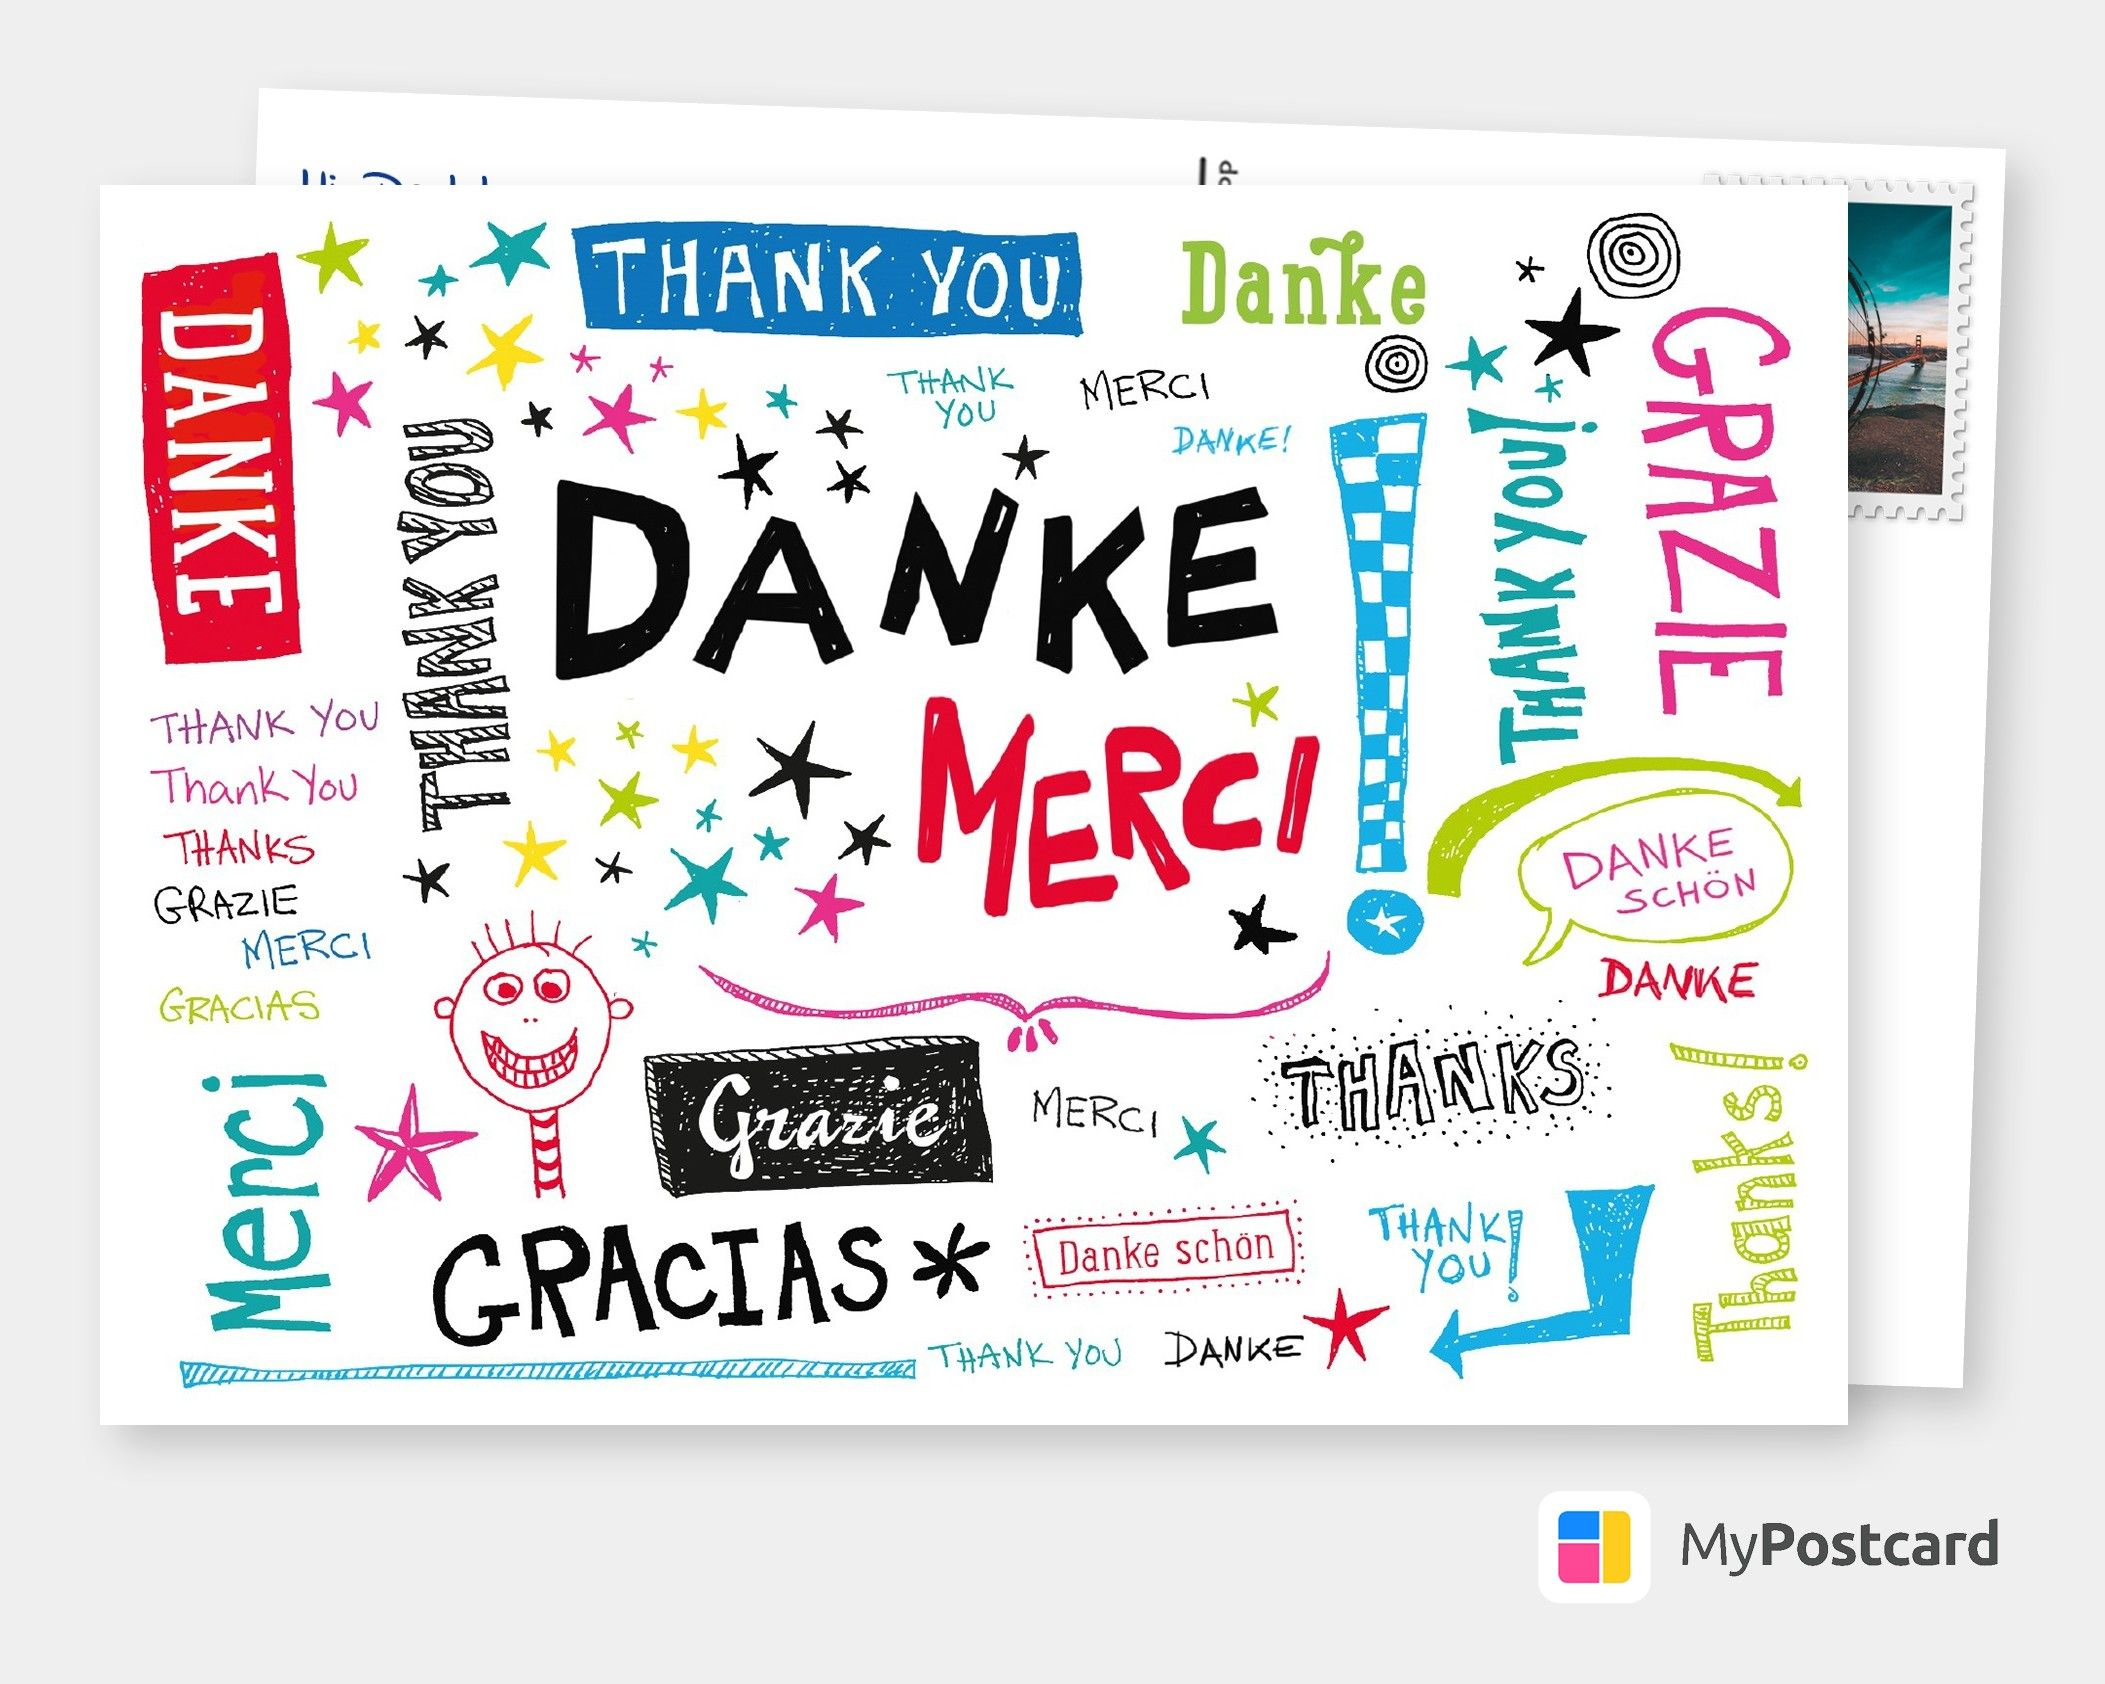 Danke Aus Aller Welt With Images Thank You Postcards Thank